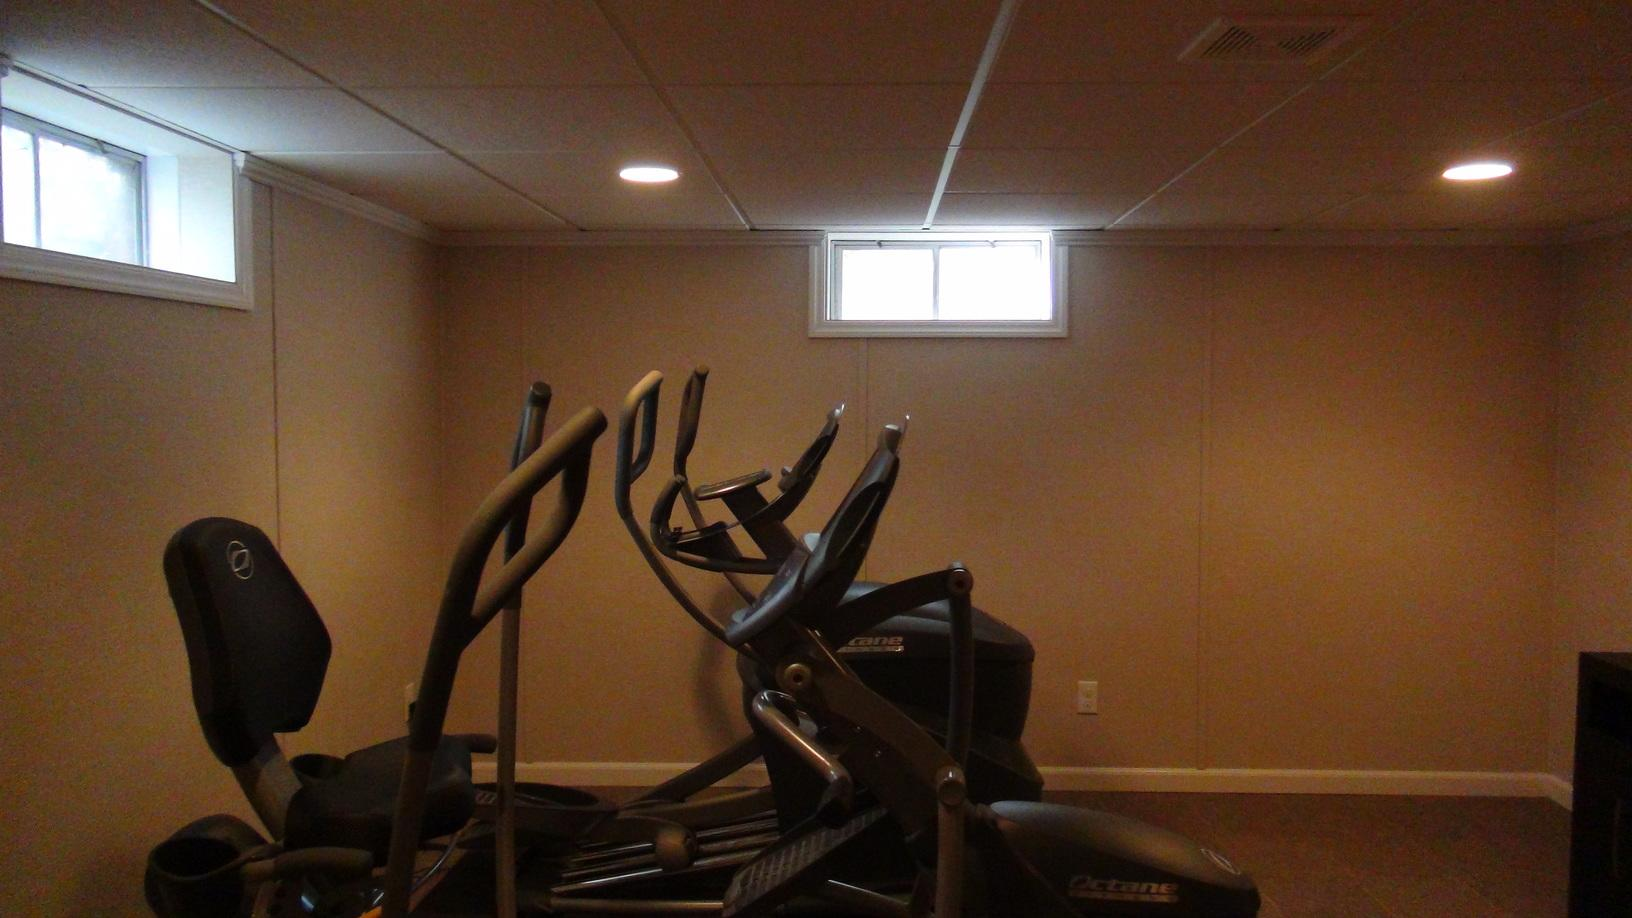 Workout area in the basement